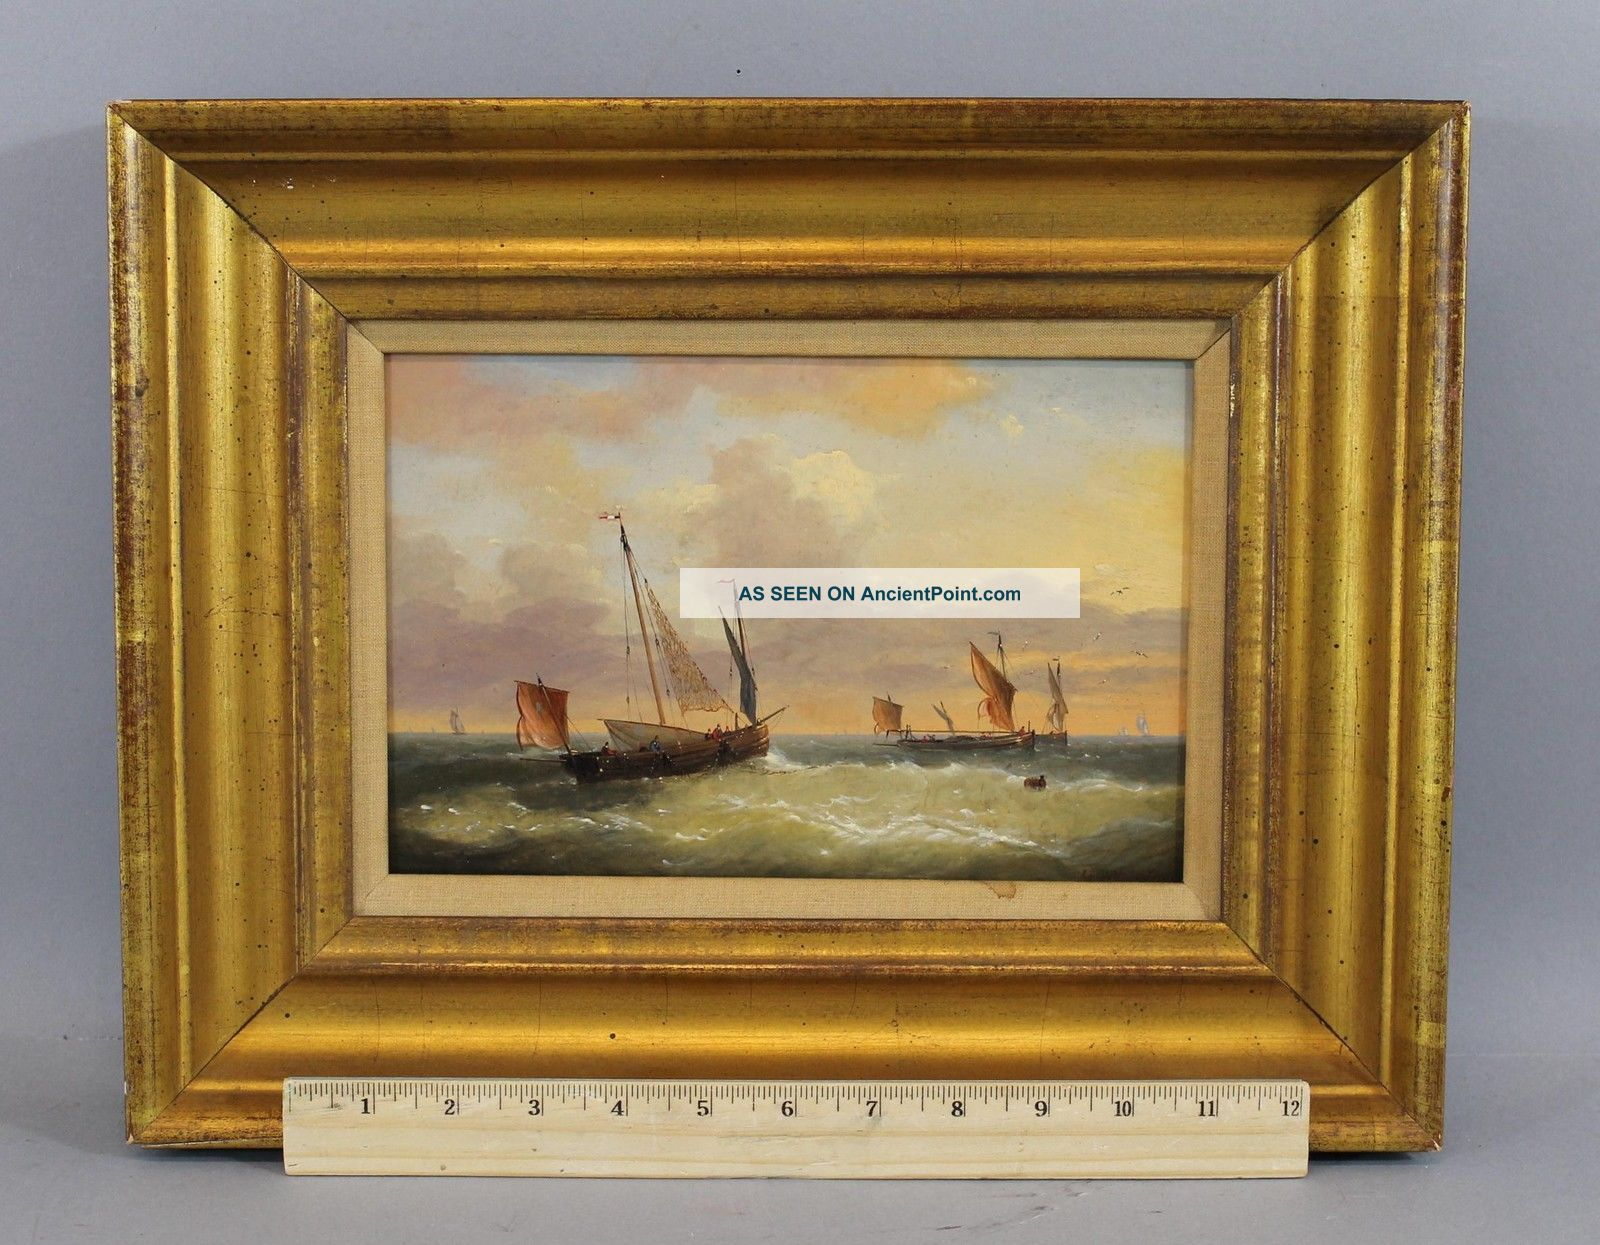 Antique Louis Charles Verboeckhoven Dutch Fishing Boats Seascape Oil Painting Nr Other Maritime Antiques photo